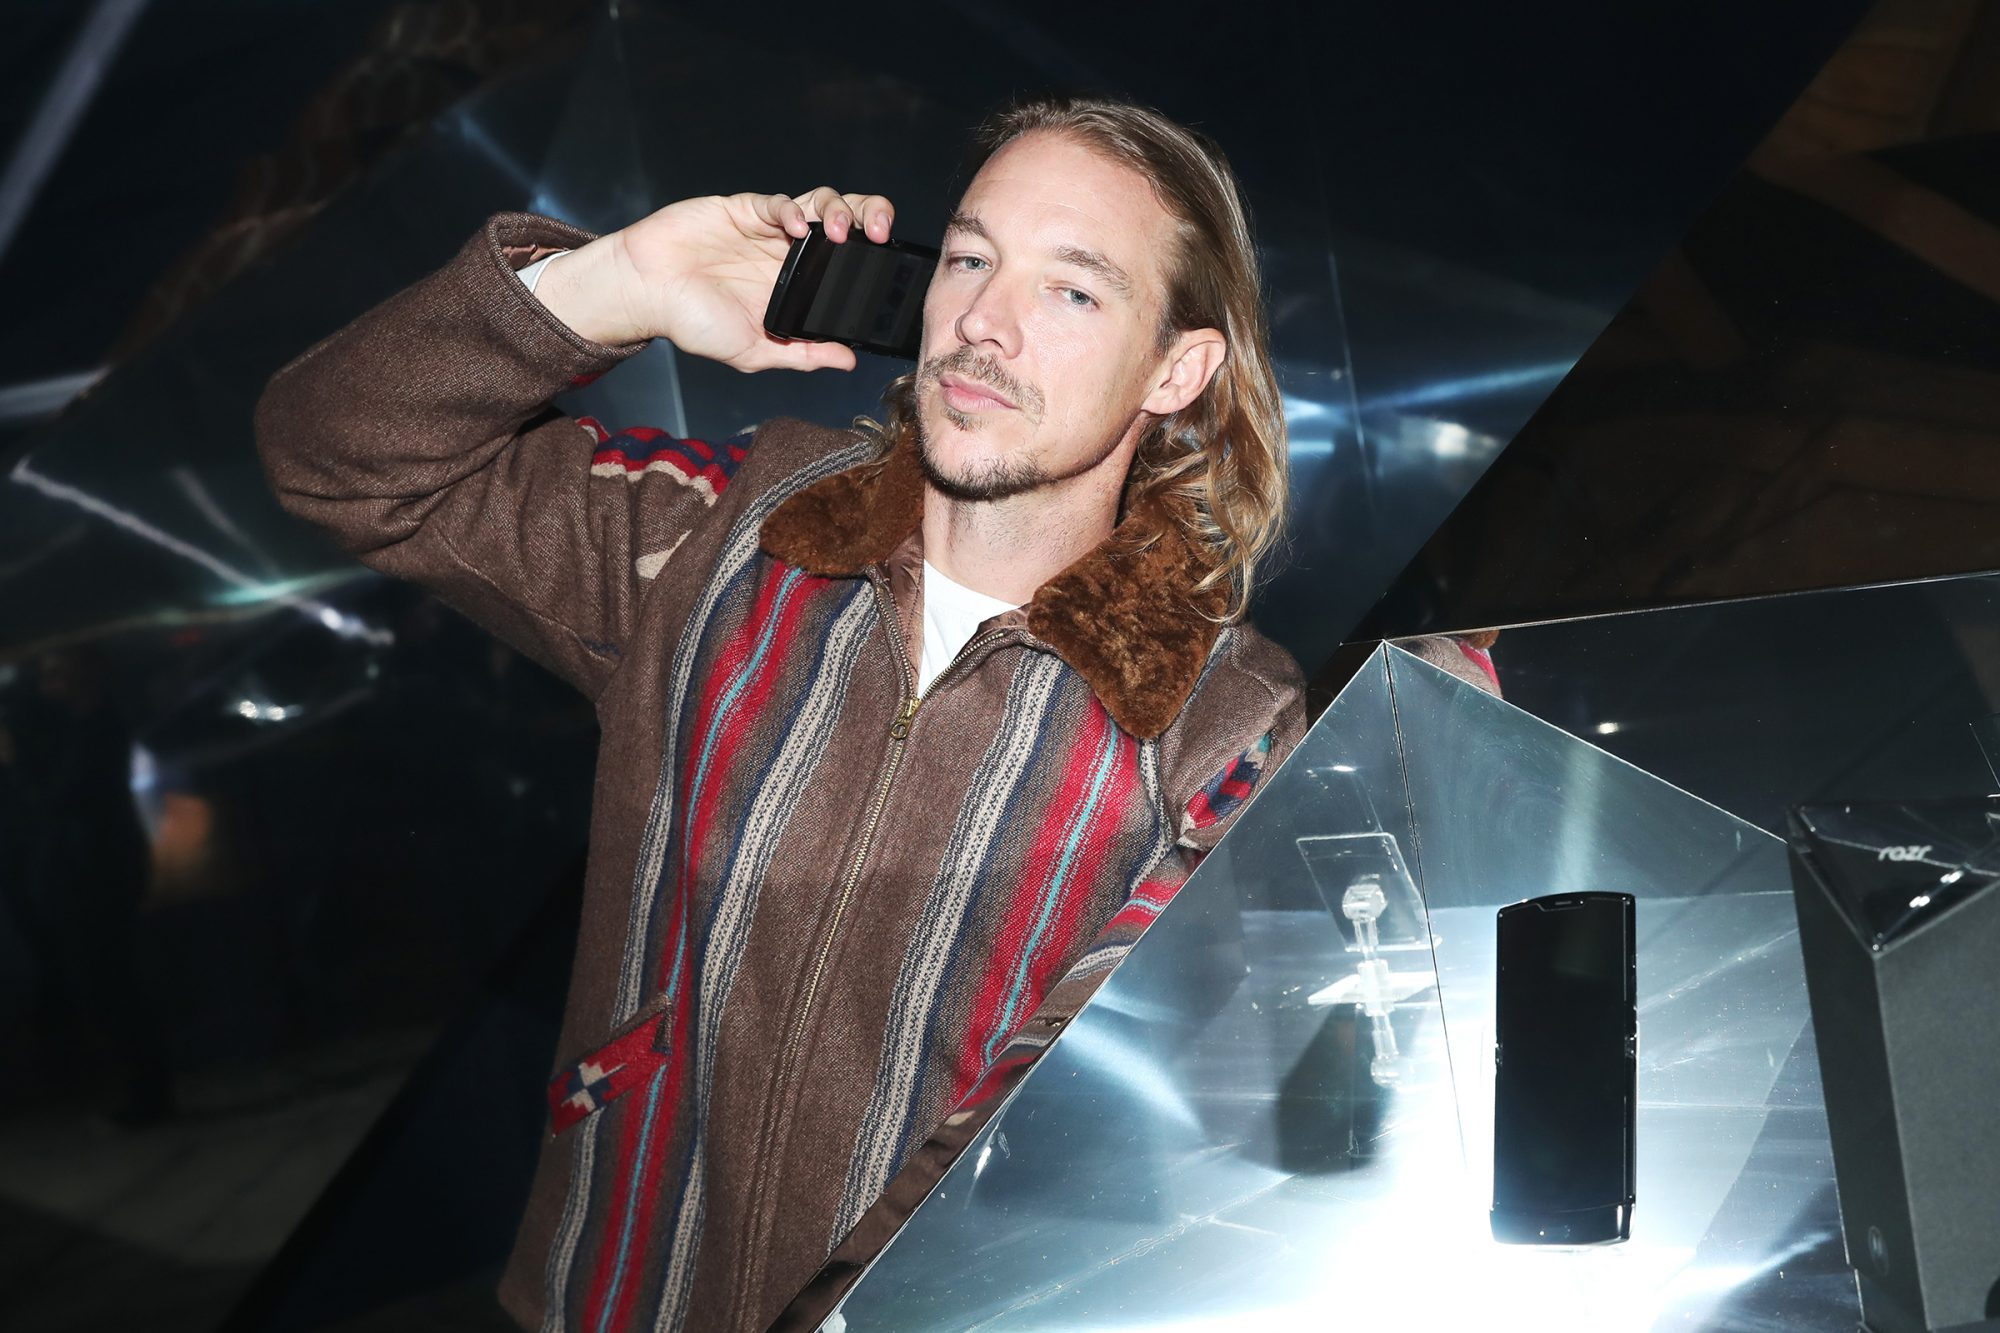 Diplo attends the unveiling of the razr as a reinvented icon in Los Angeles at The Container Yard on November 13, 2019 in Los Angeles, California